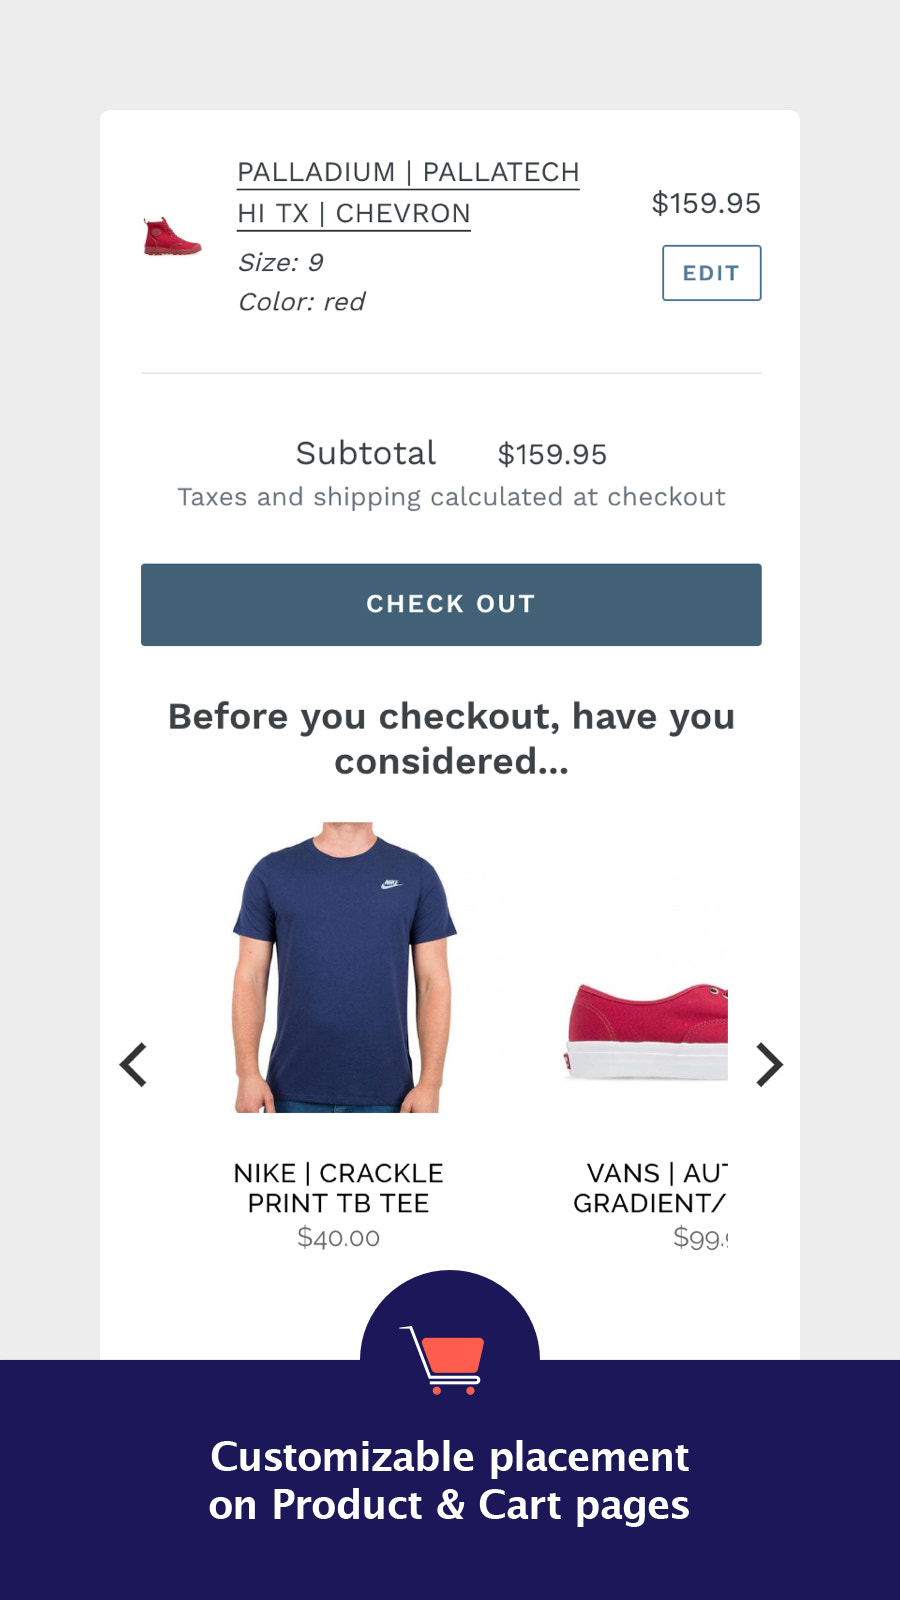 Cross Sell on cart pages before checkout